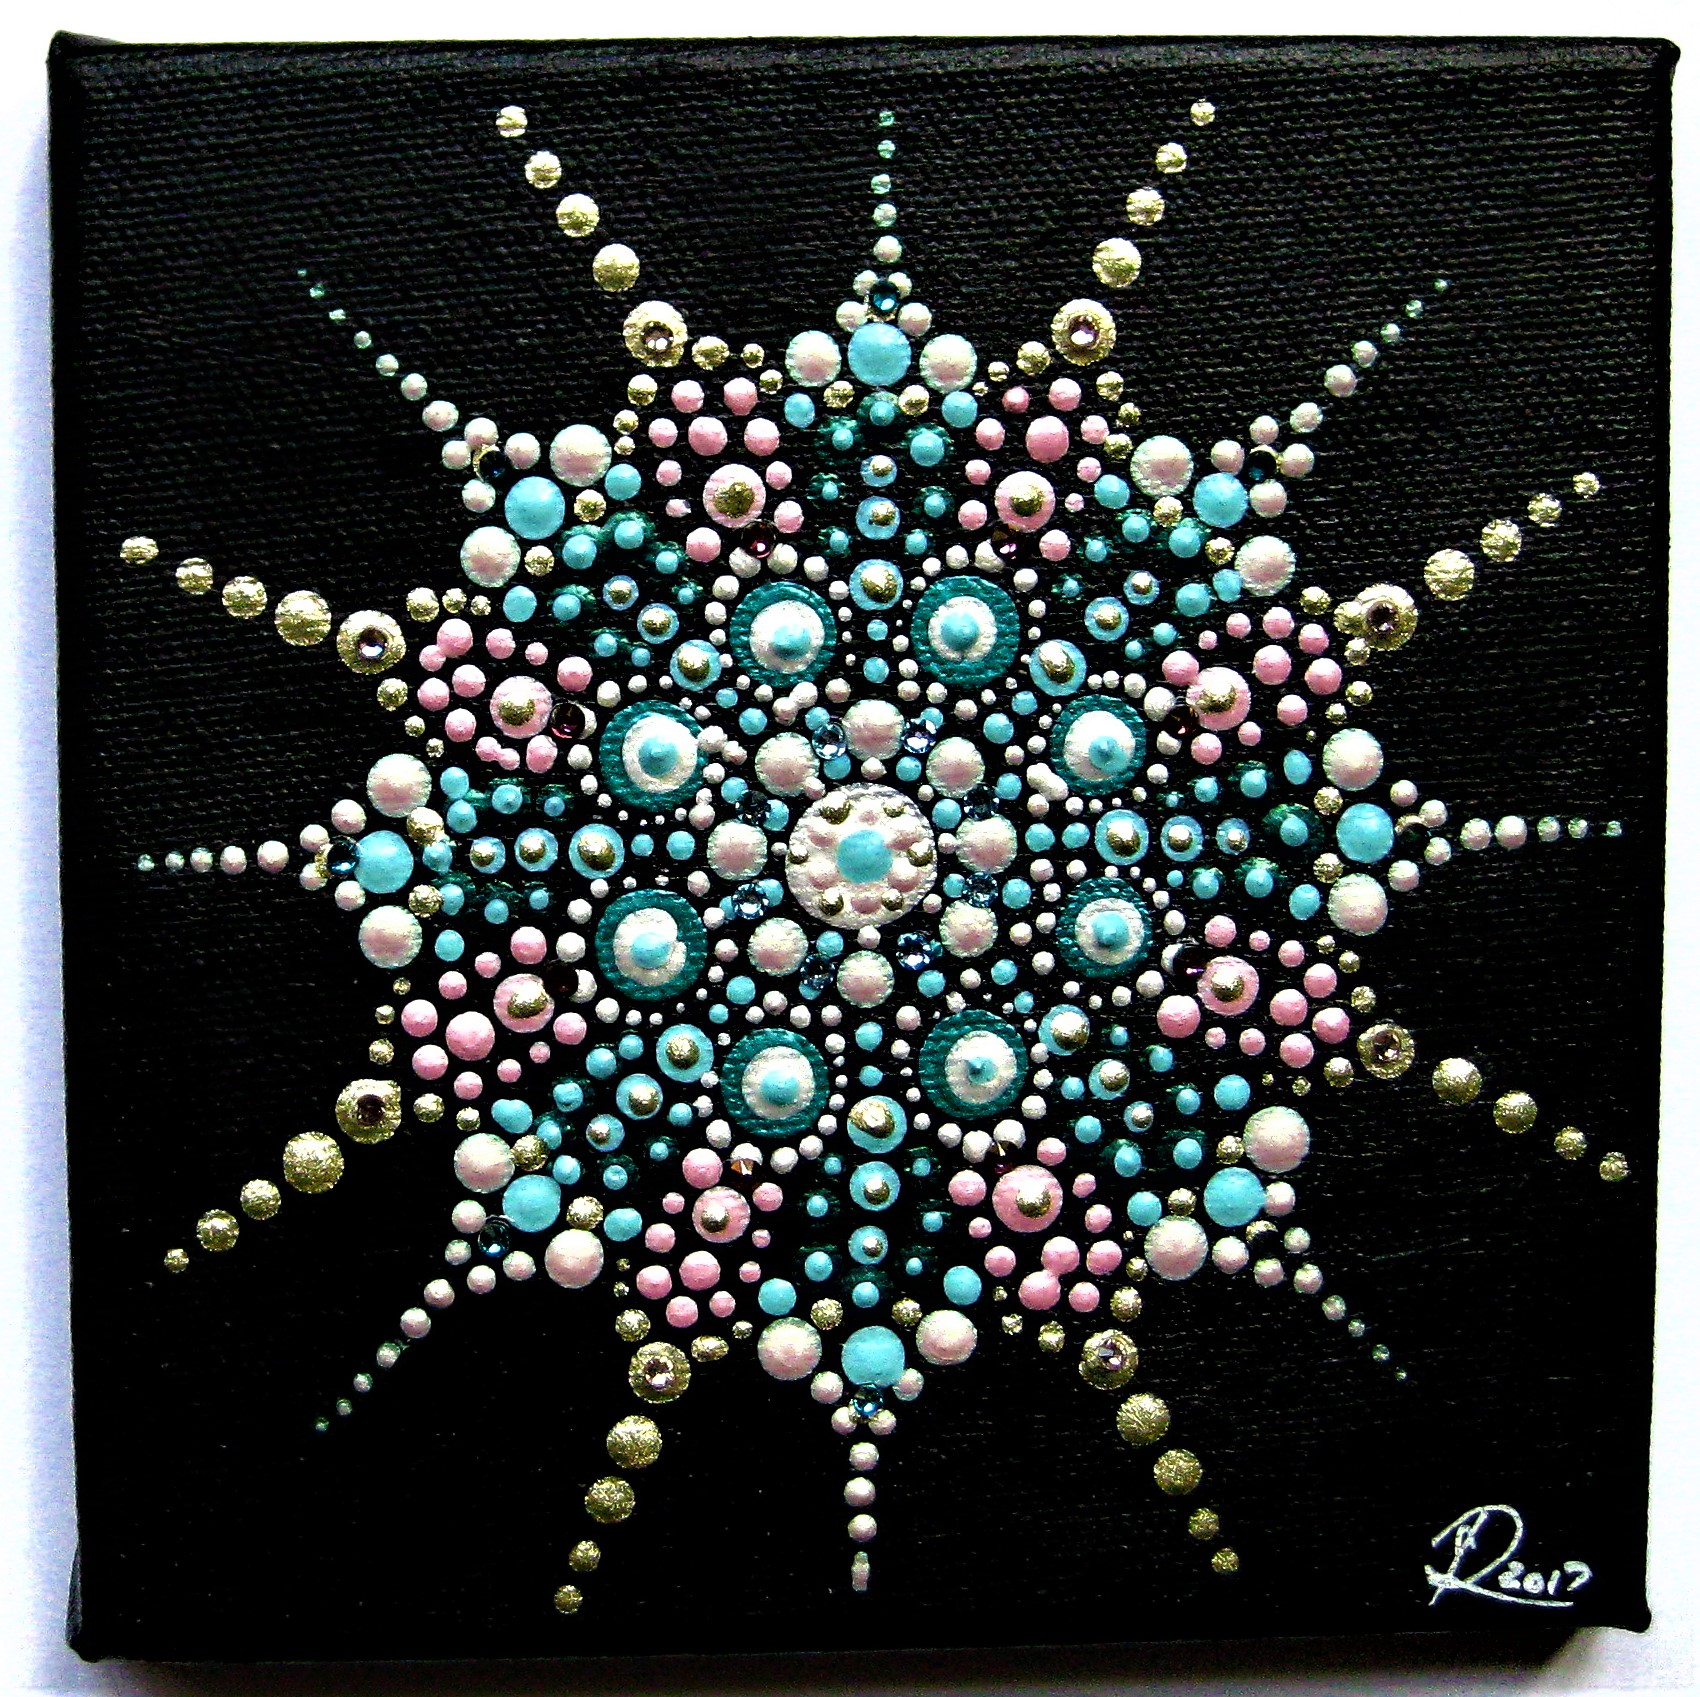 Dot Mandalas And Cyber Week Everything Sale Artfulflight